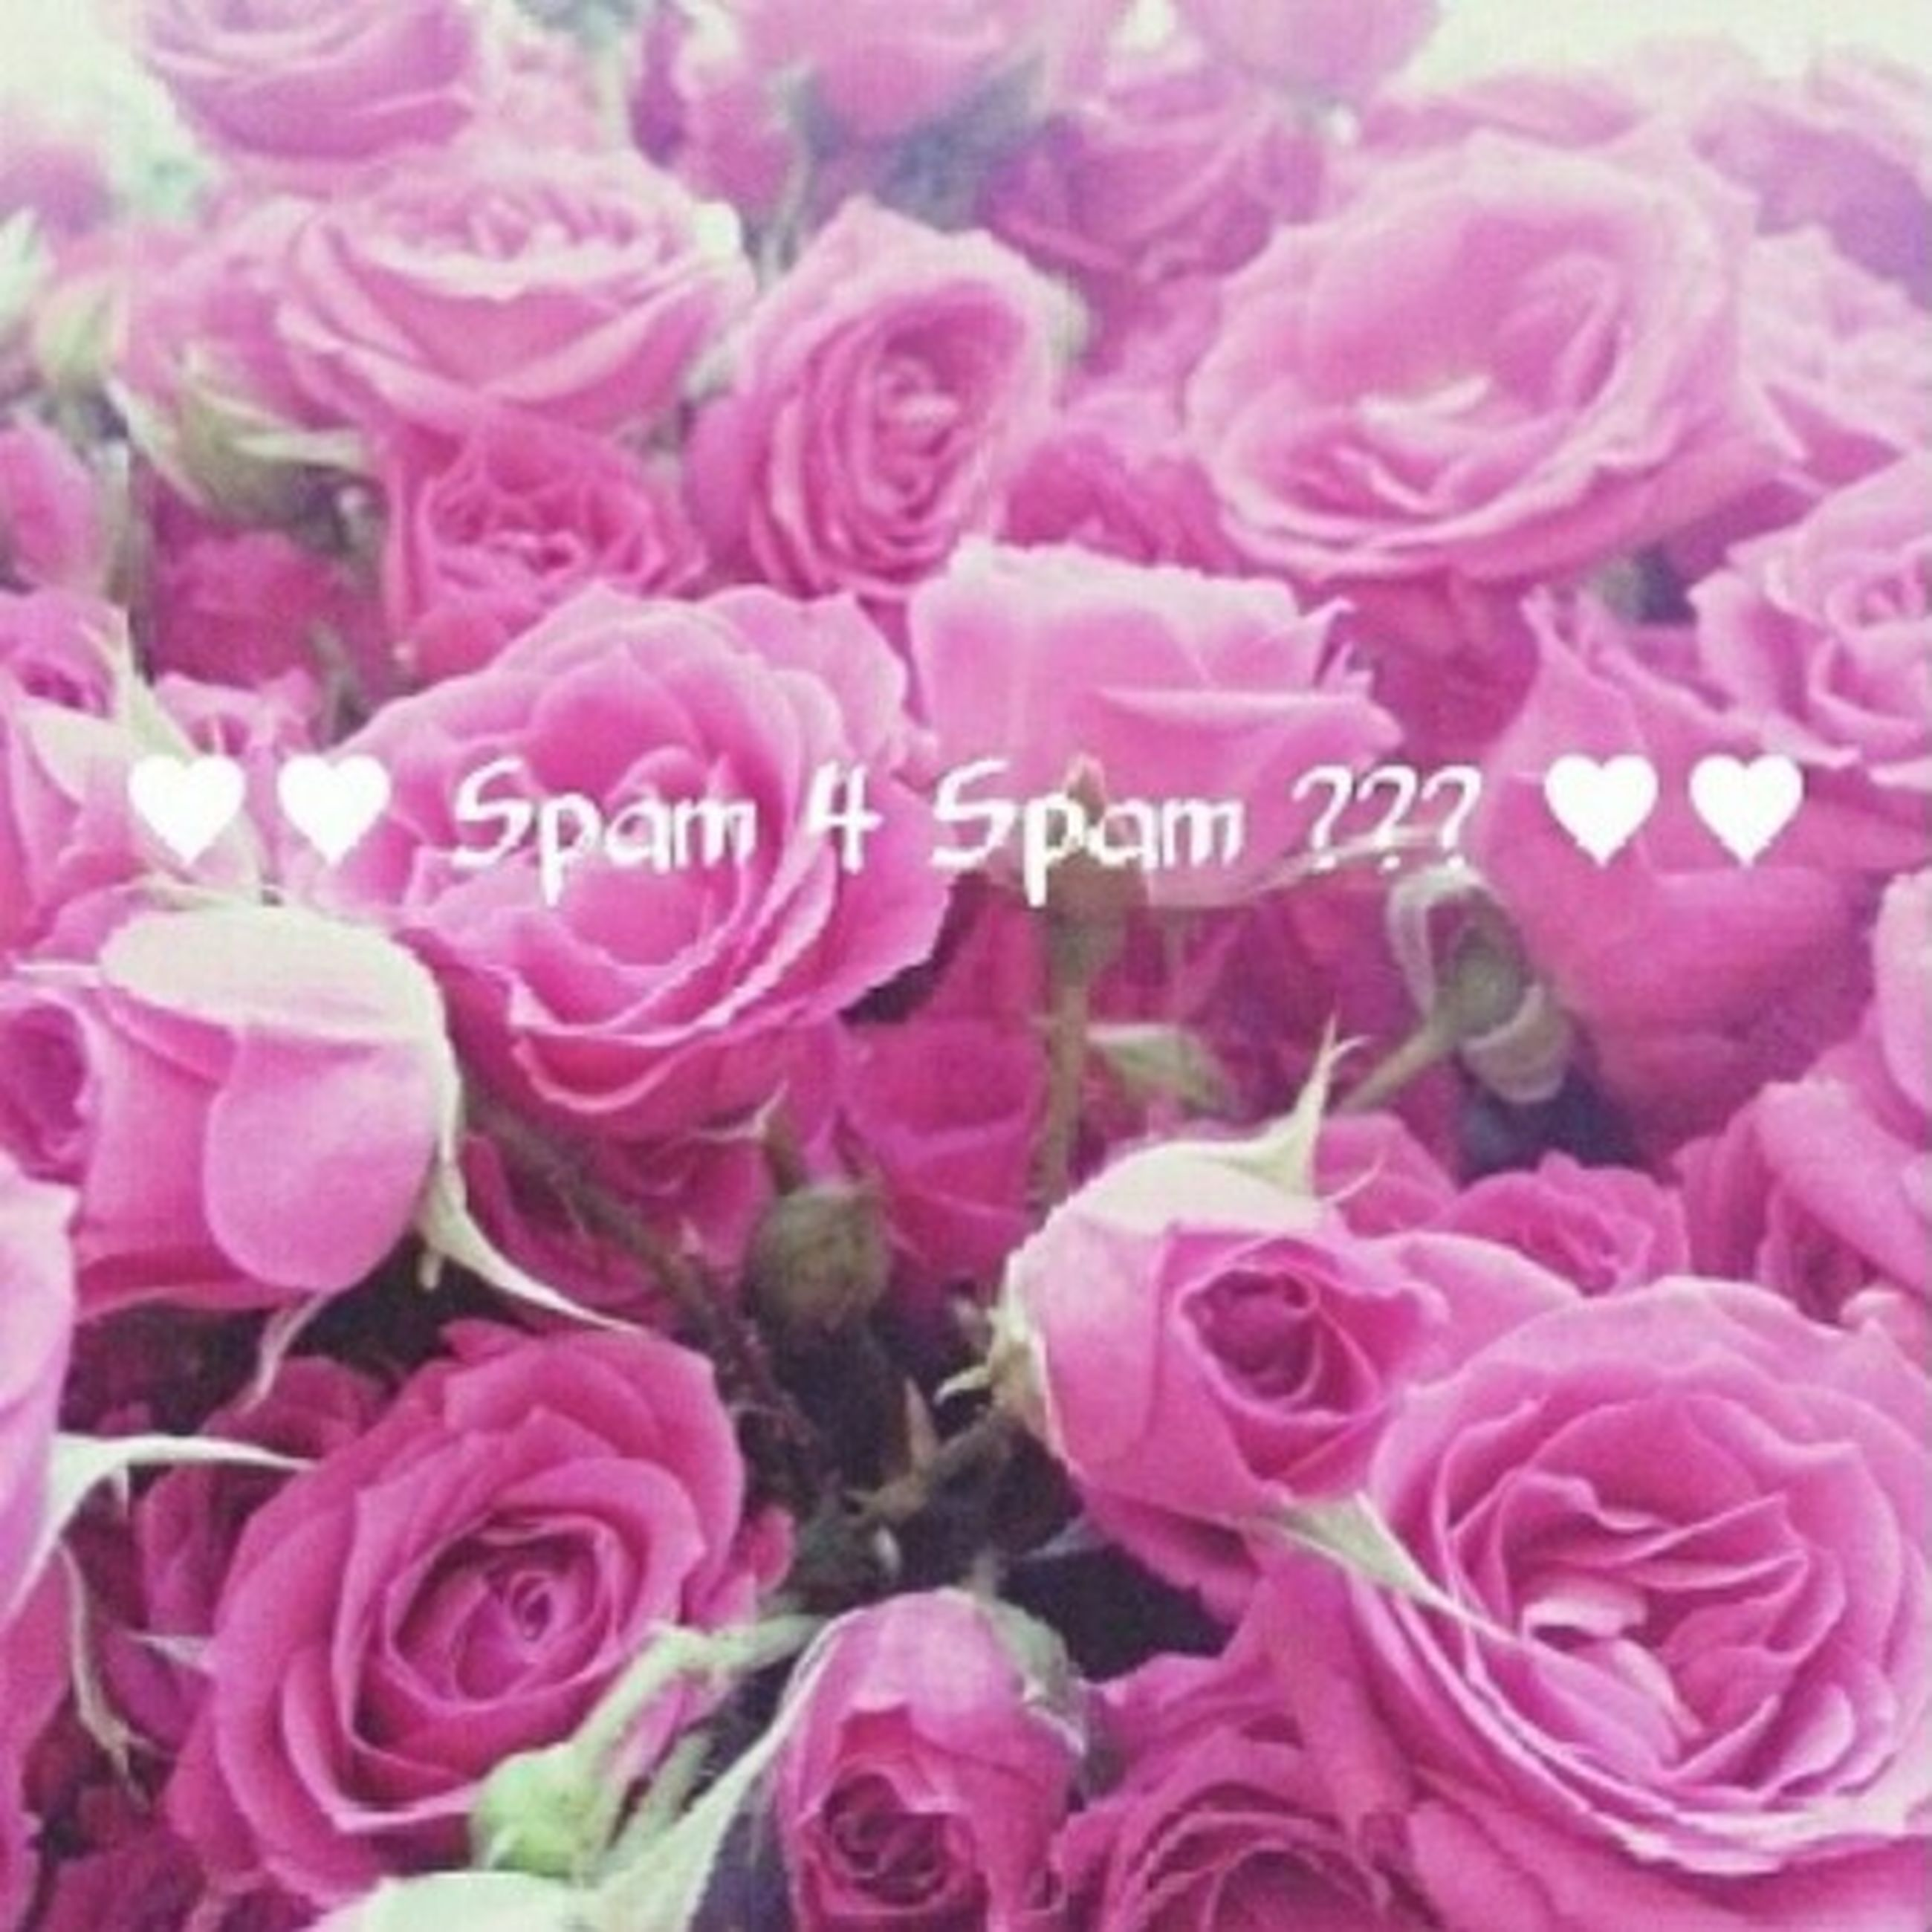 flower, petal, freshness, pink color, fragility, flower head, beauty in nature, full frame, backgrounds, rose - flower, growth, nature, close-up, blooming, pink, plant, abundance, high angle view, no people, in bloom